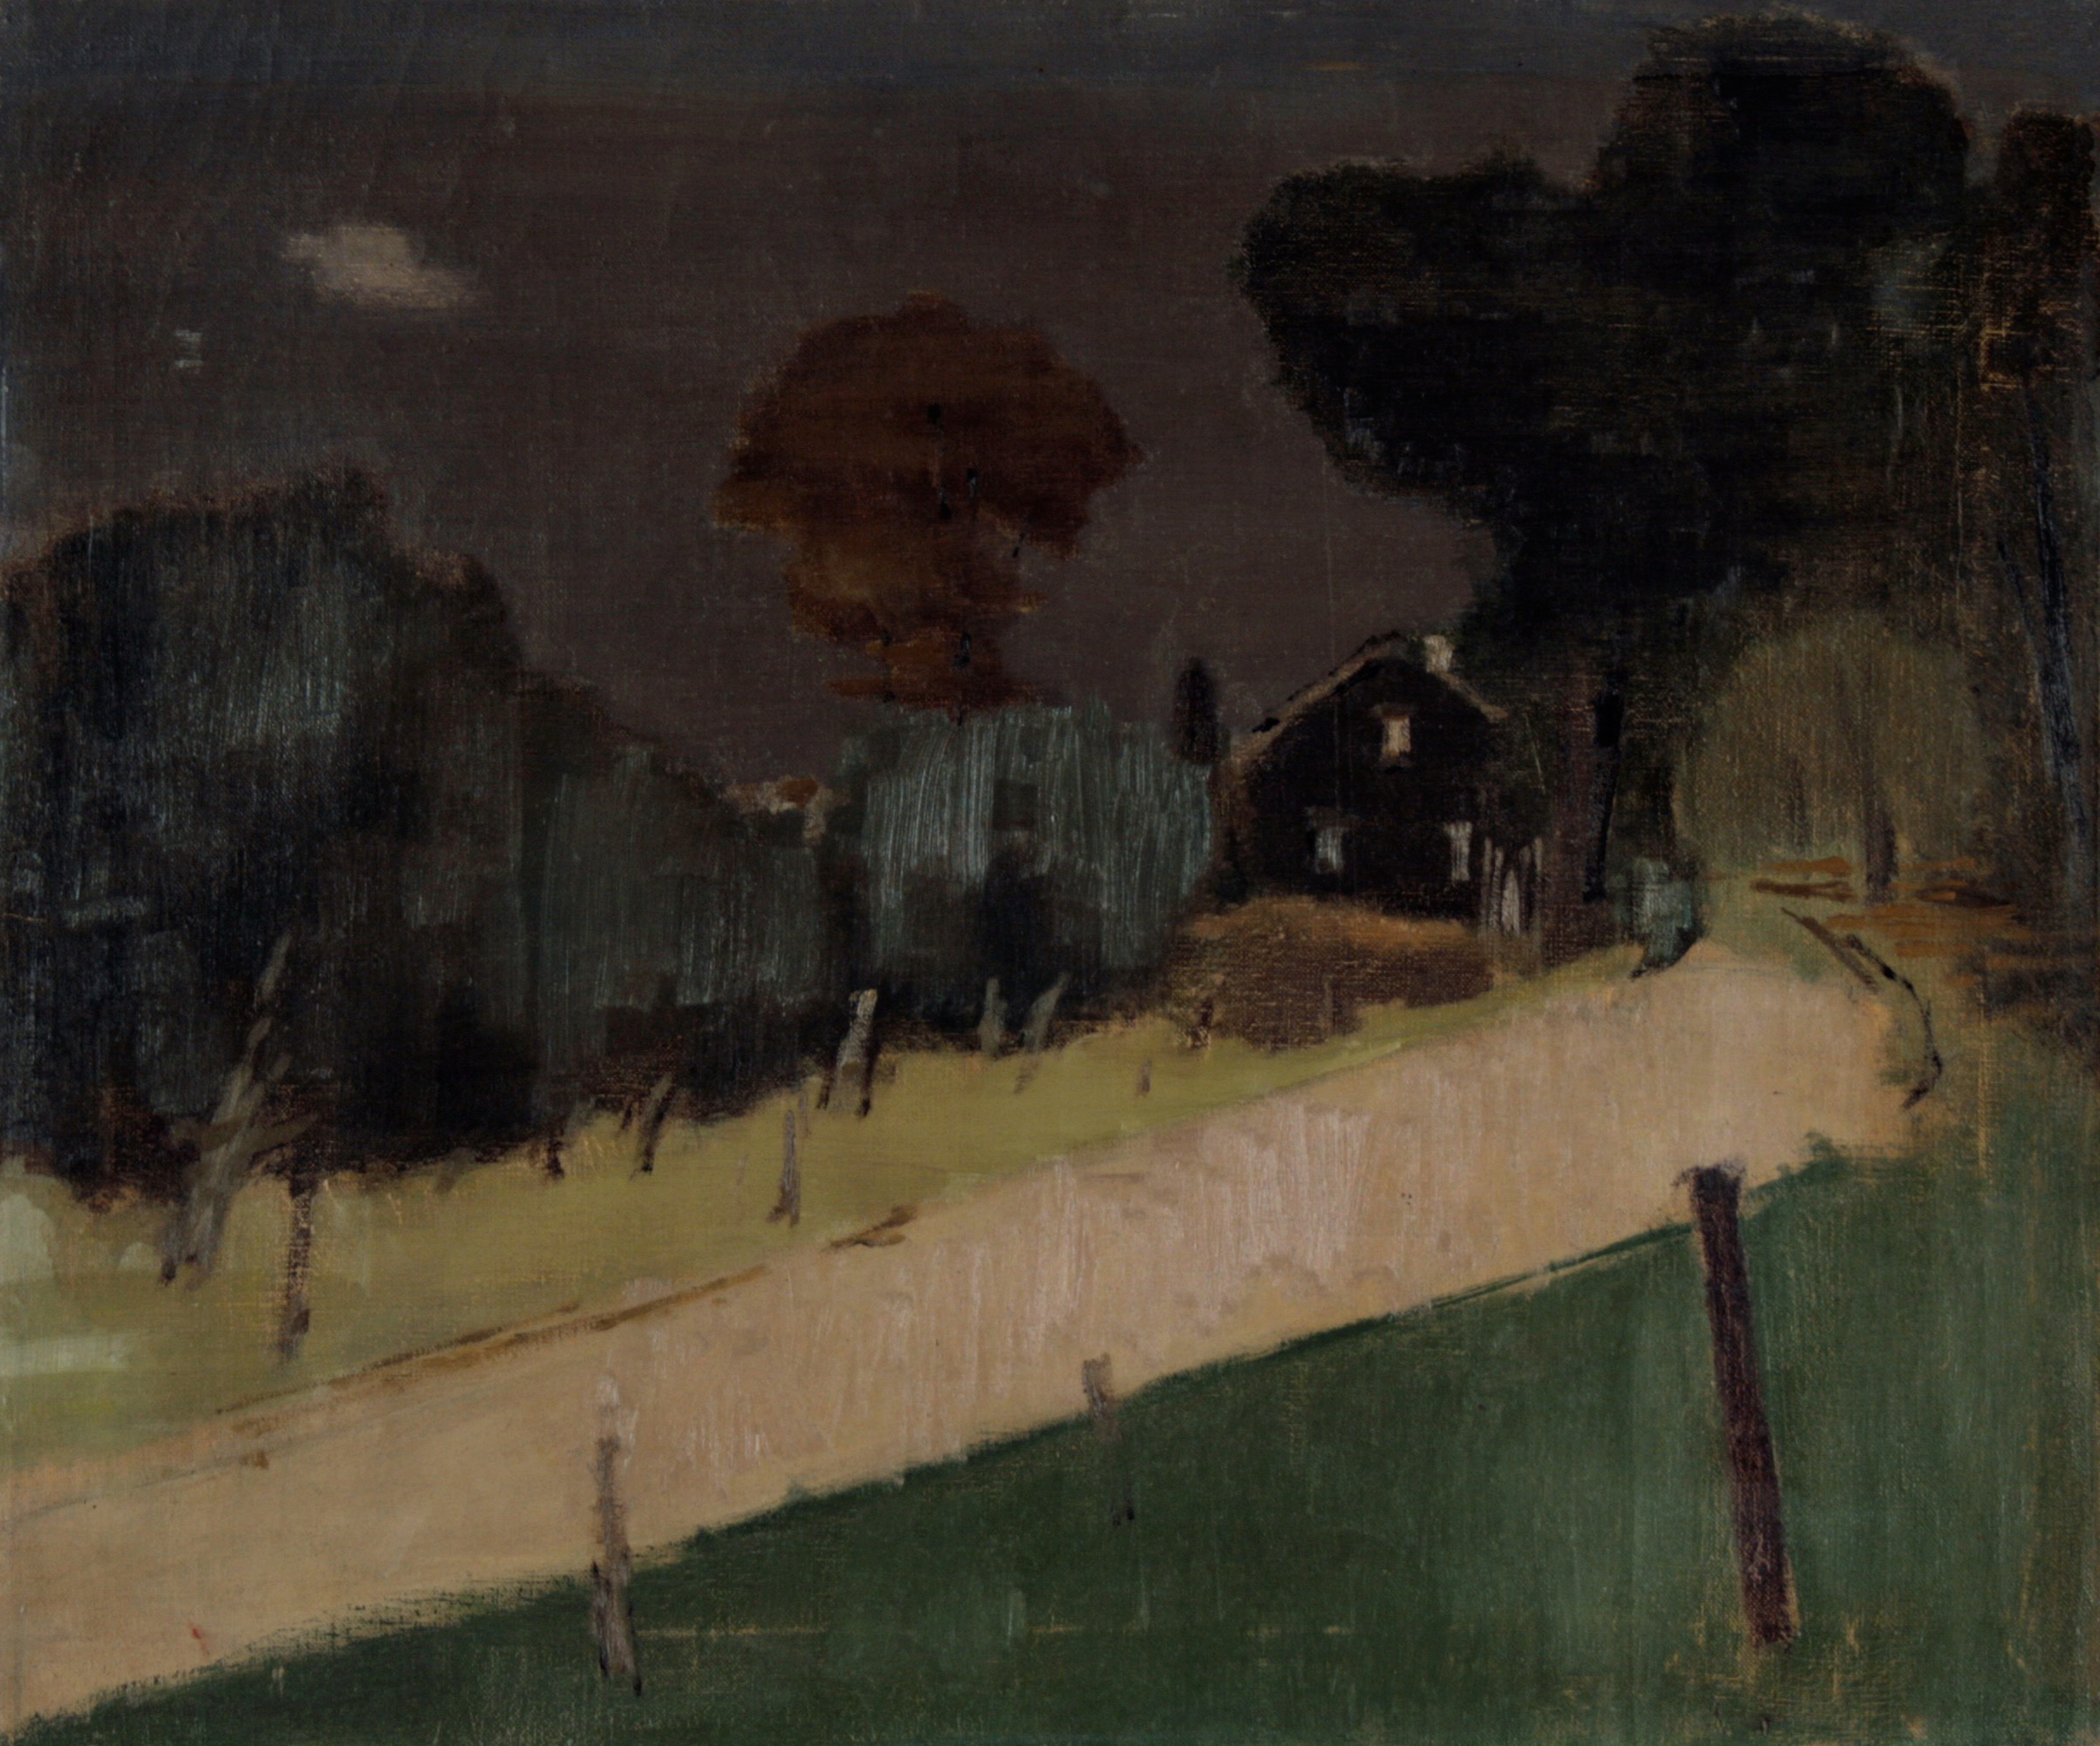 1951_Road_at_StHilaire_oil_on_linen_20x24in_PF376.jpg